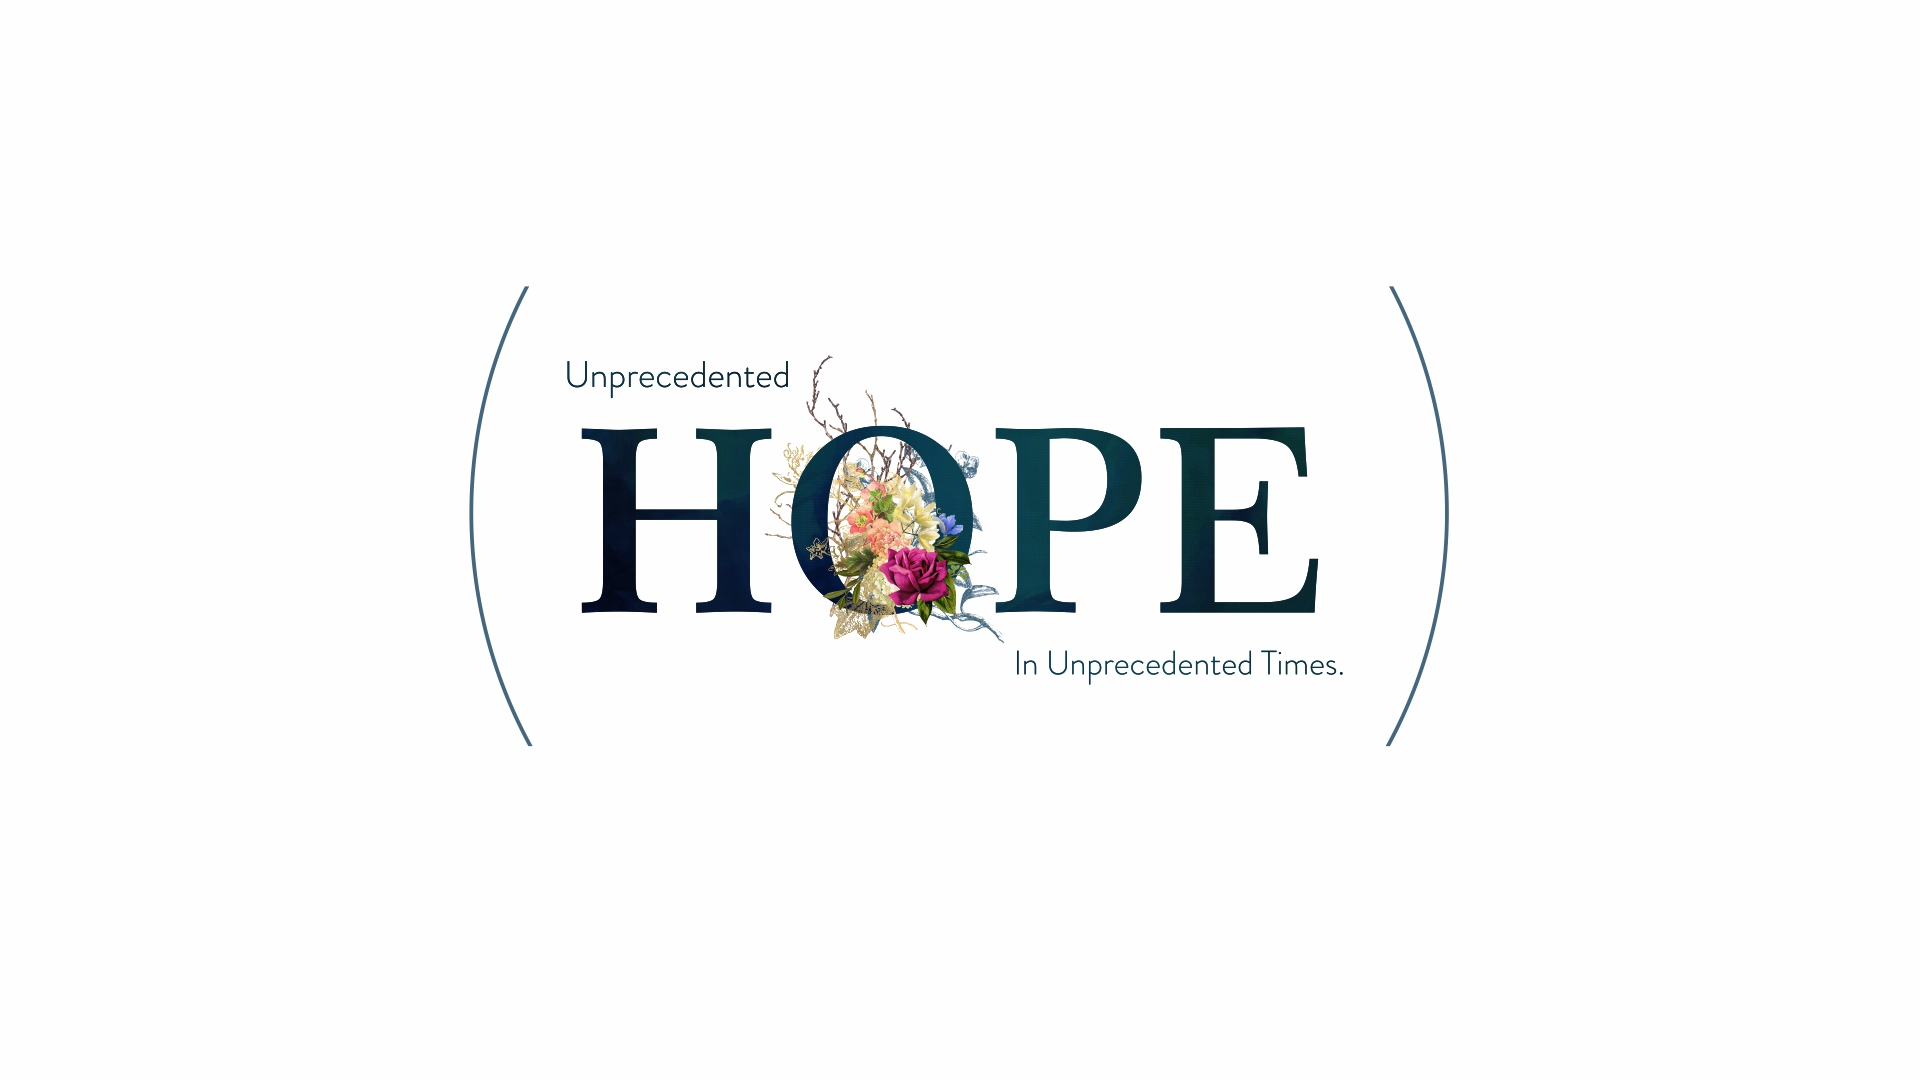 A title with the word HOPE with flowers filling the letter O